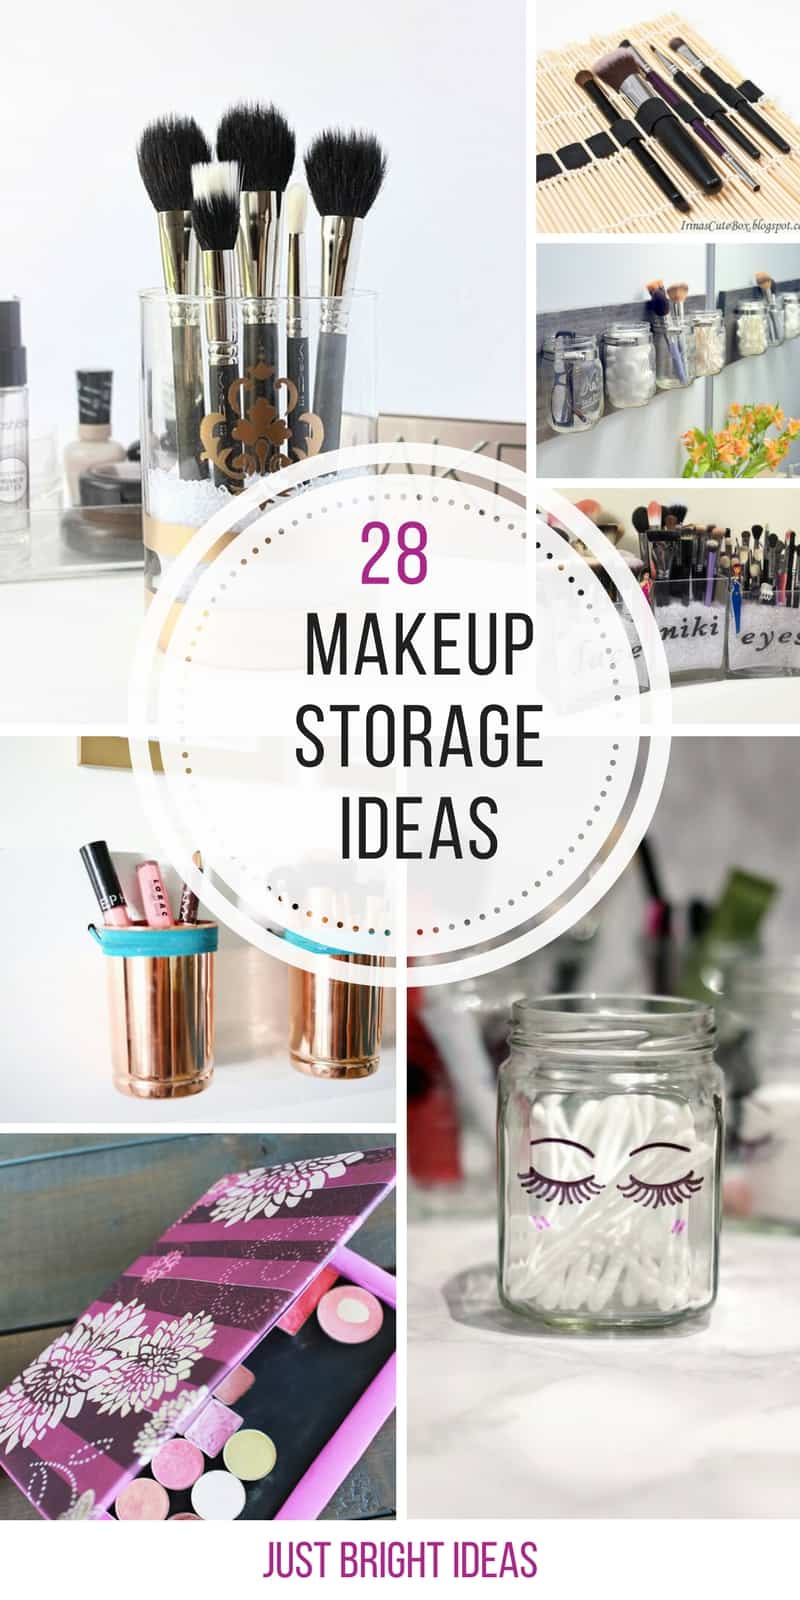 Loving these makeup storage ideas - so easy to make too - thanks for sharing!